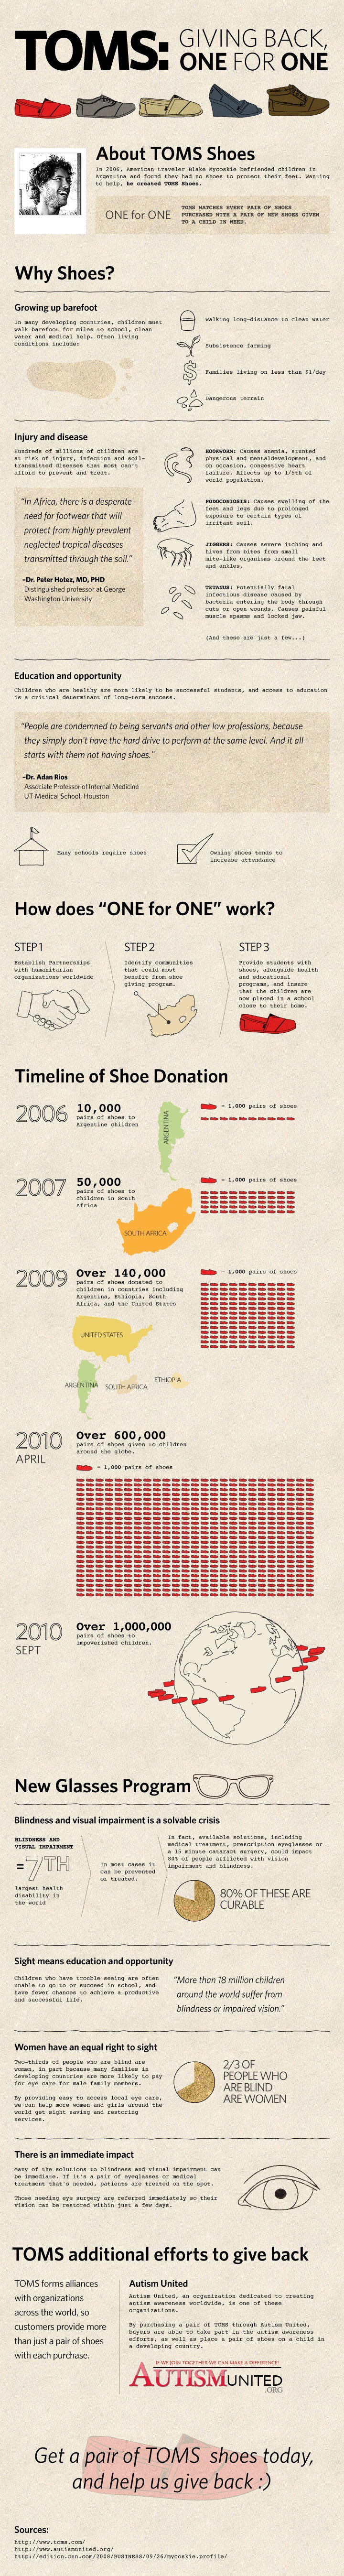 TOMS Infographic